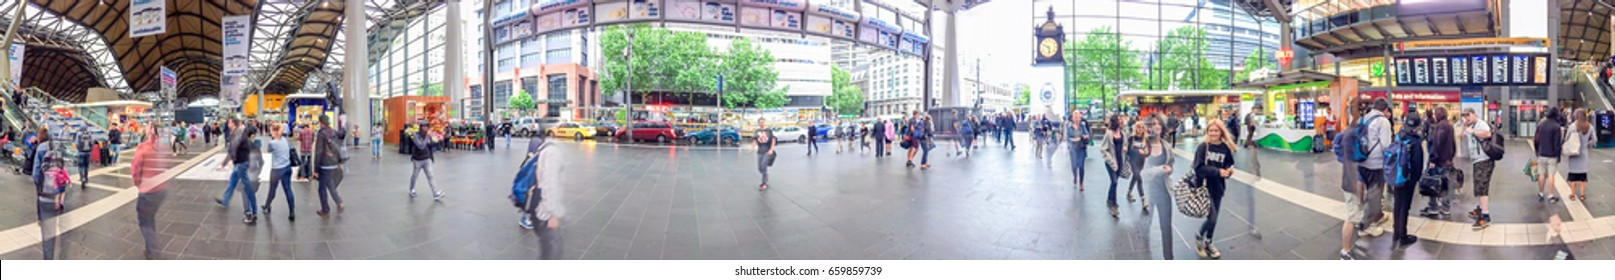 MELBOURNE - NOVEMBER 2015: Panoramic view of Southern Cross Station interior. Melbourne attracts 10 million tourists annually.